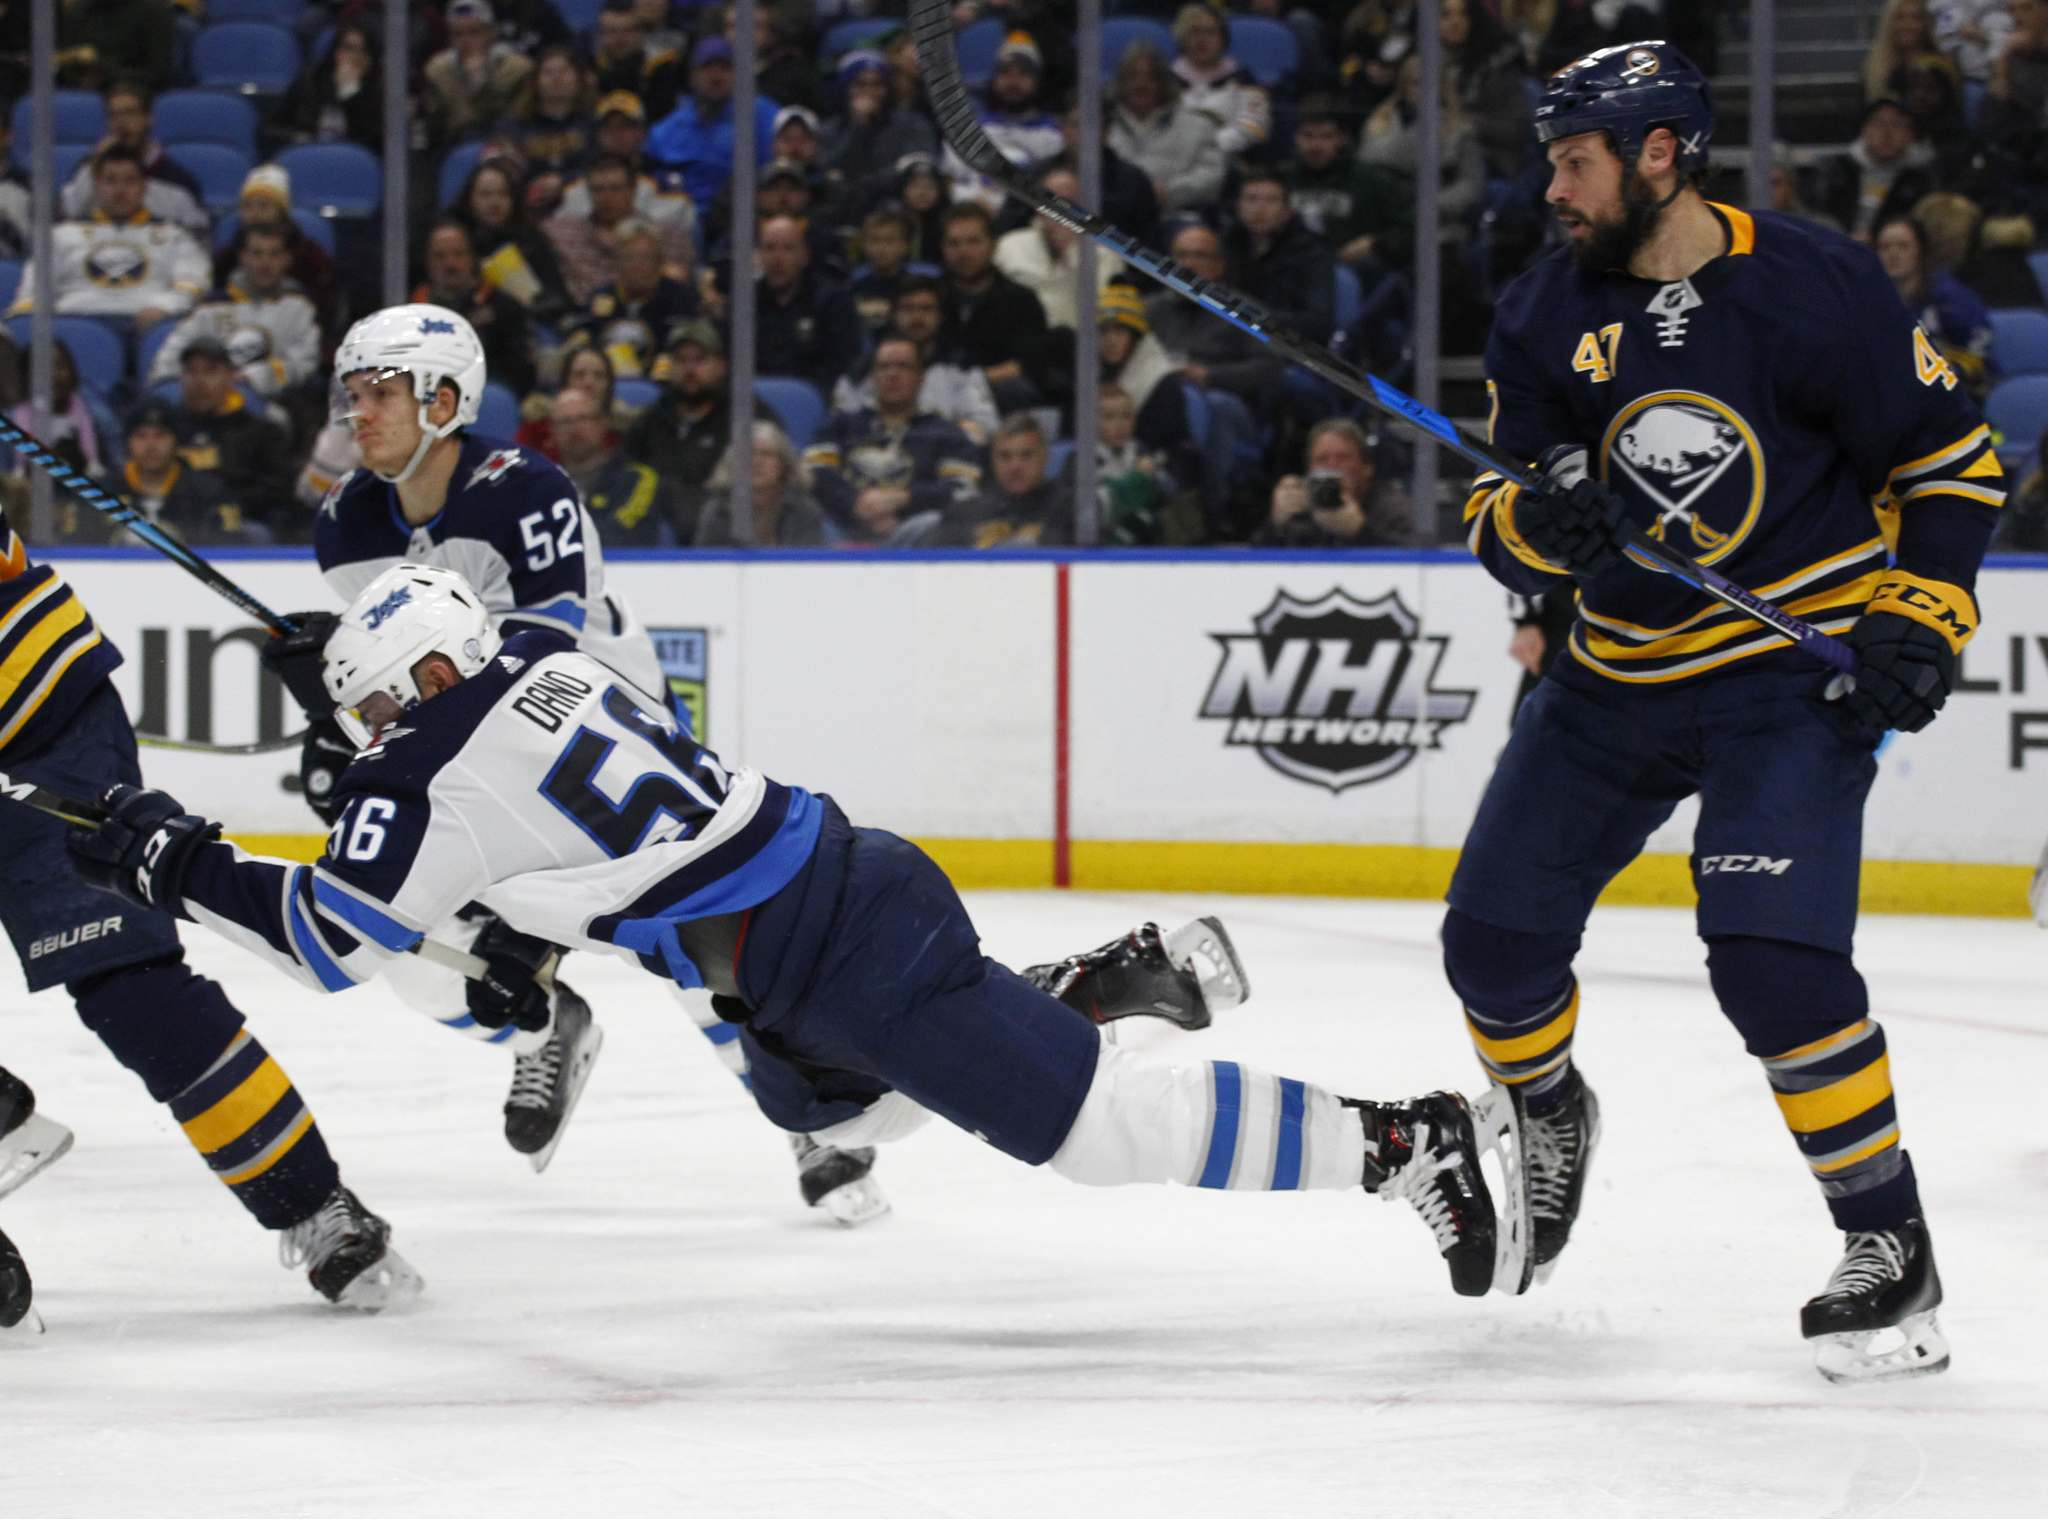 Jeffrey T. Barnes / The Associated Press</p><p>Buffalo Sabres defenseman Zach Bogosian (47) trips Winnipeg Jets forward Marko Dano (56) during the second period of an NHL hockey game, Tuesday, Jan. 9, 2018, in Buffalo, N.Y.</p>